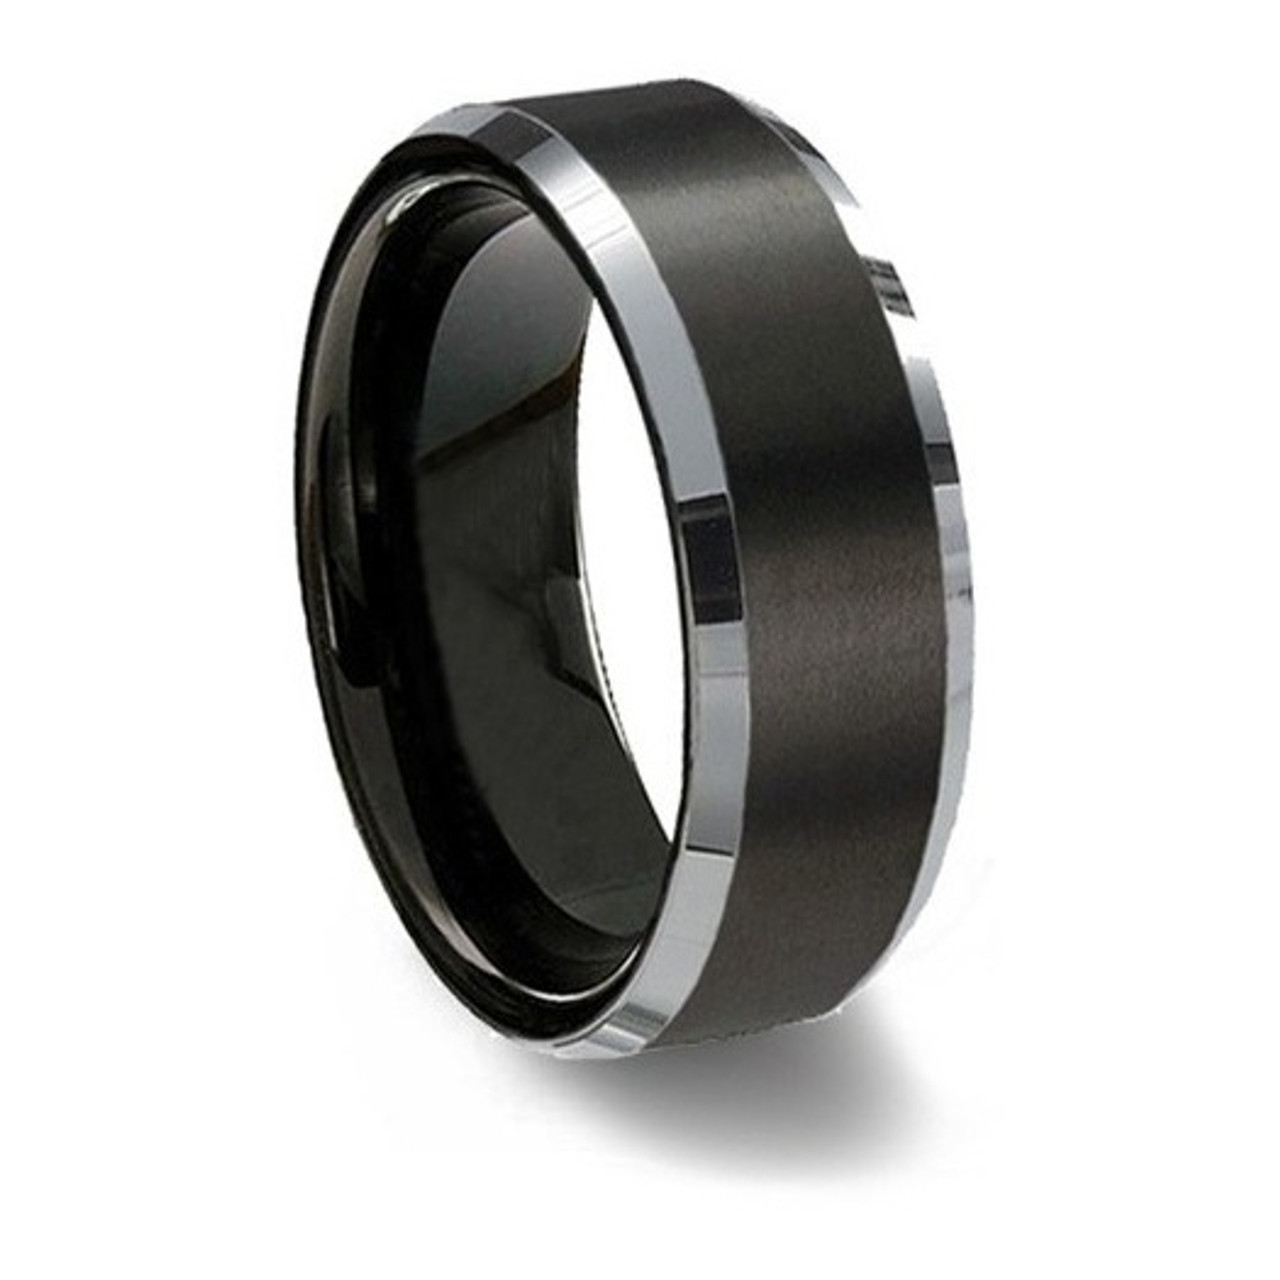 It is just a graphic of 34 mm Mens Wedding Bands, Brushed Black Tungsten - P34C